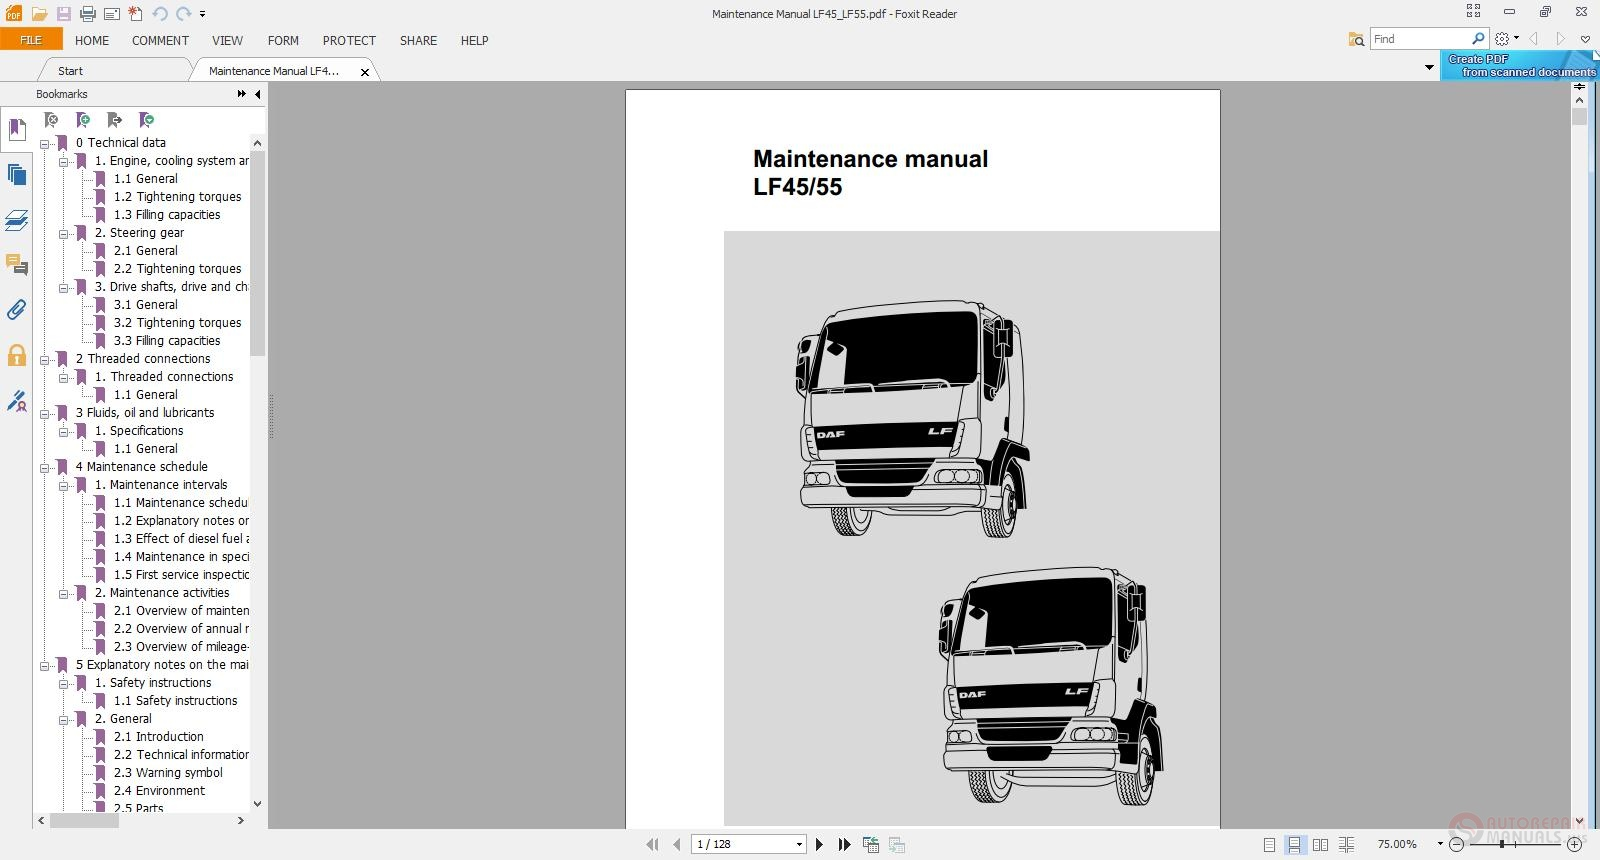 Daf Lf45 Lf55 Maintenance Manual Auto Repair Manual Forum Heavy Equipment Forums Download Repair Workshop Manual